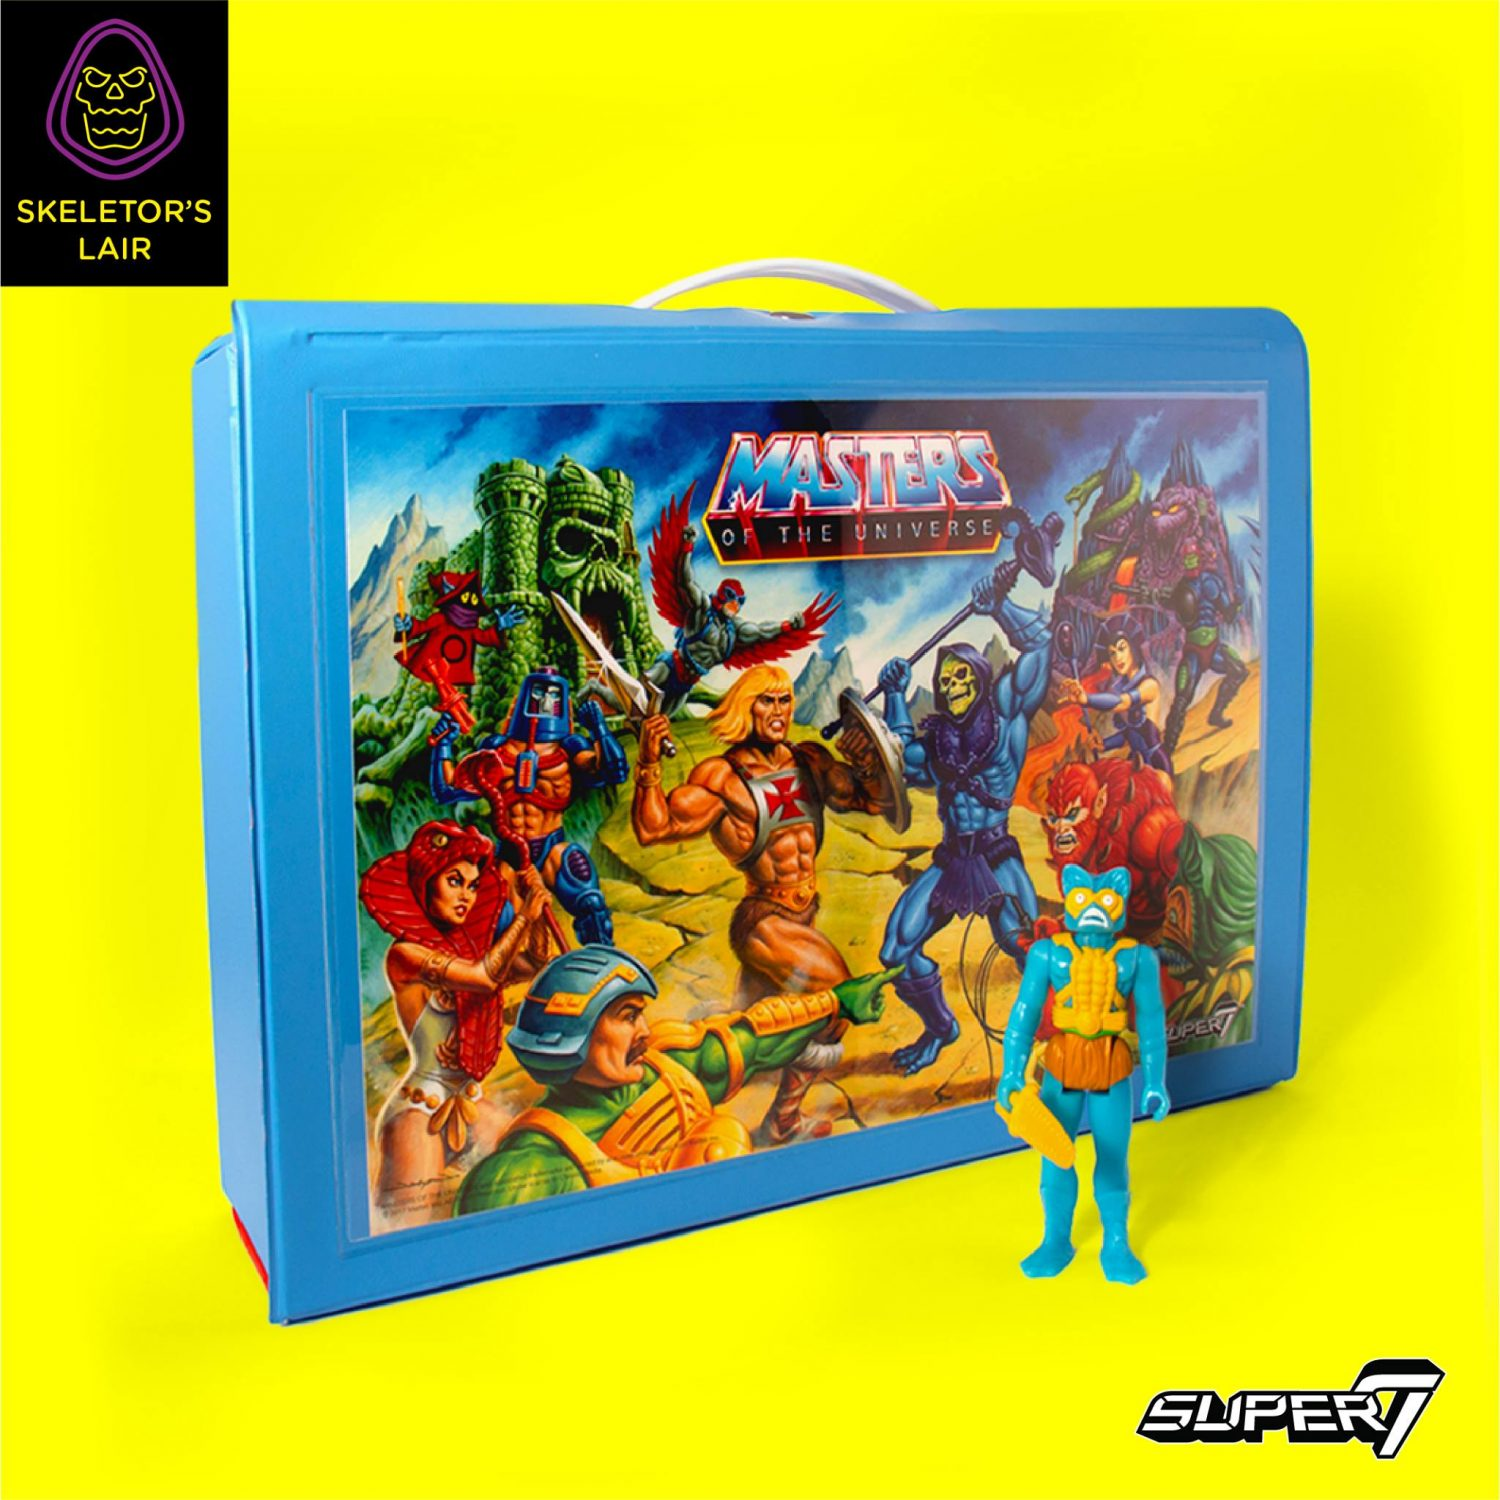 Super 7 Masters Of The Universe ReAction Figure Carrying Case